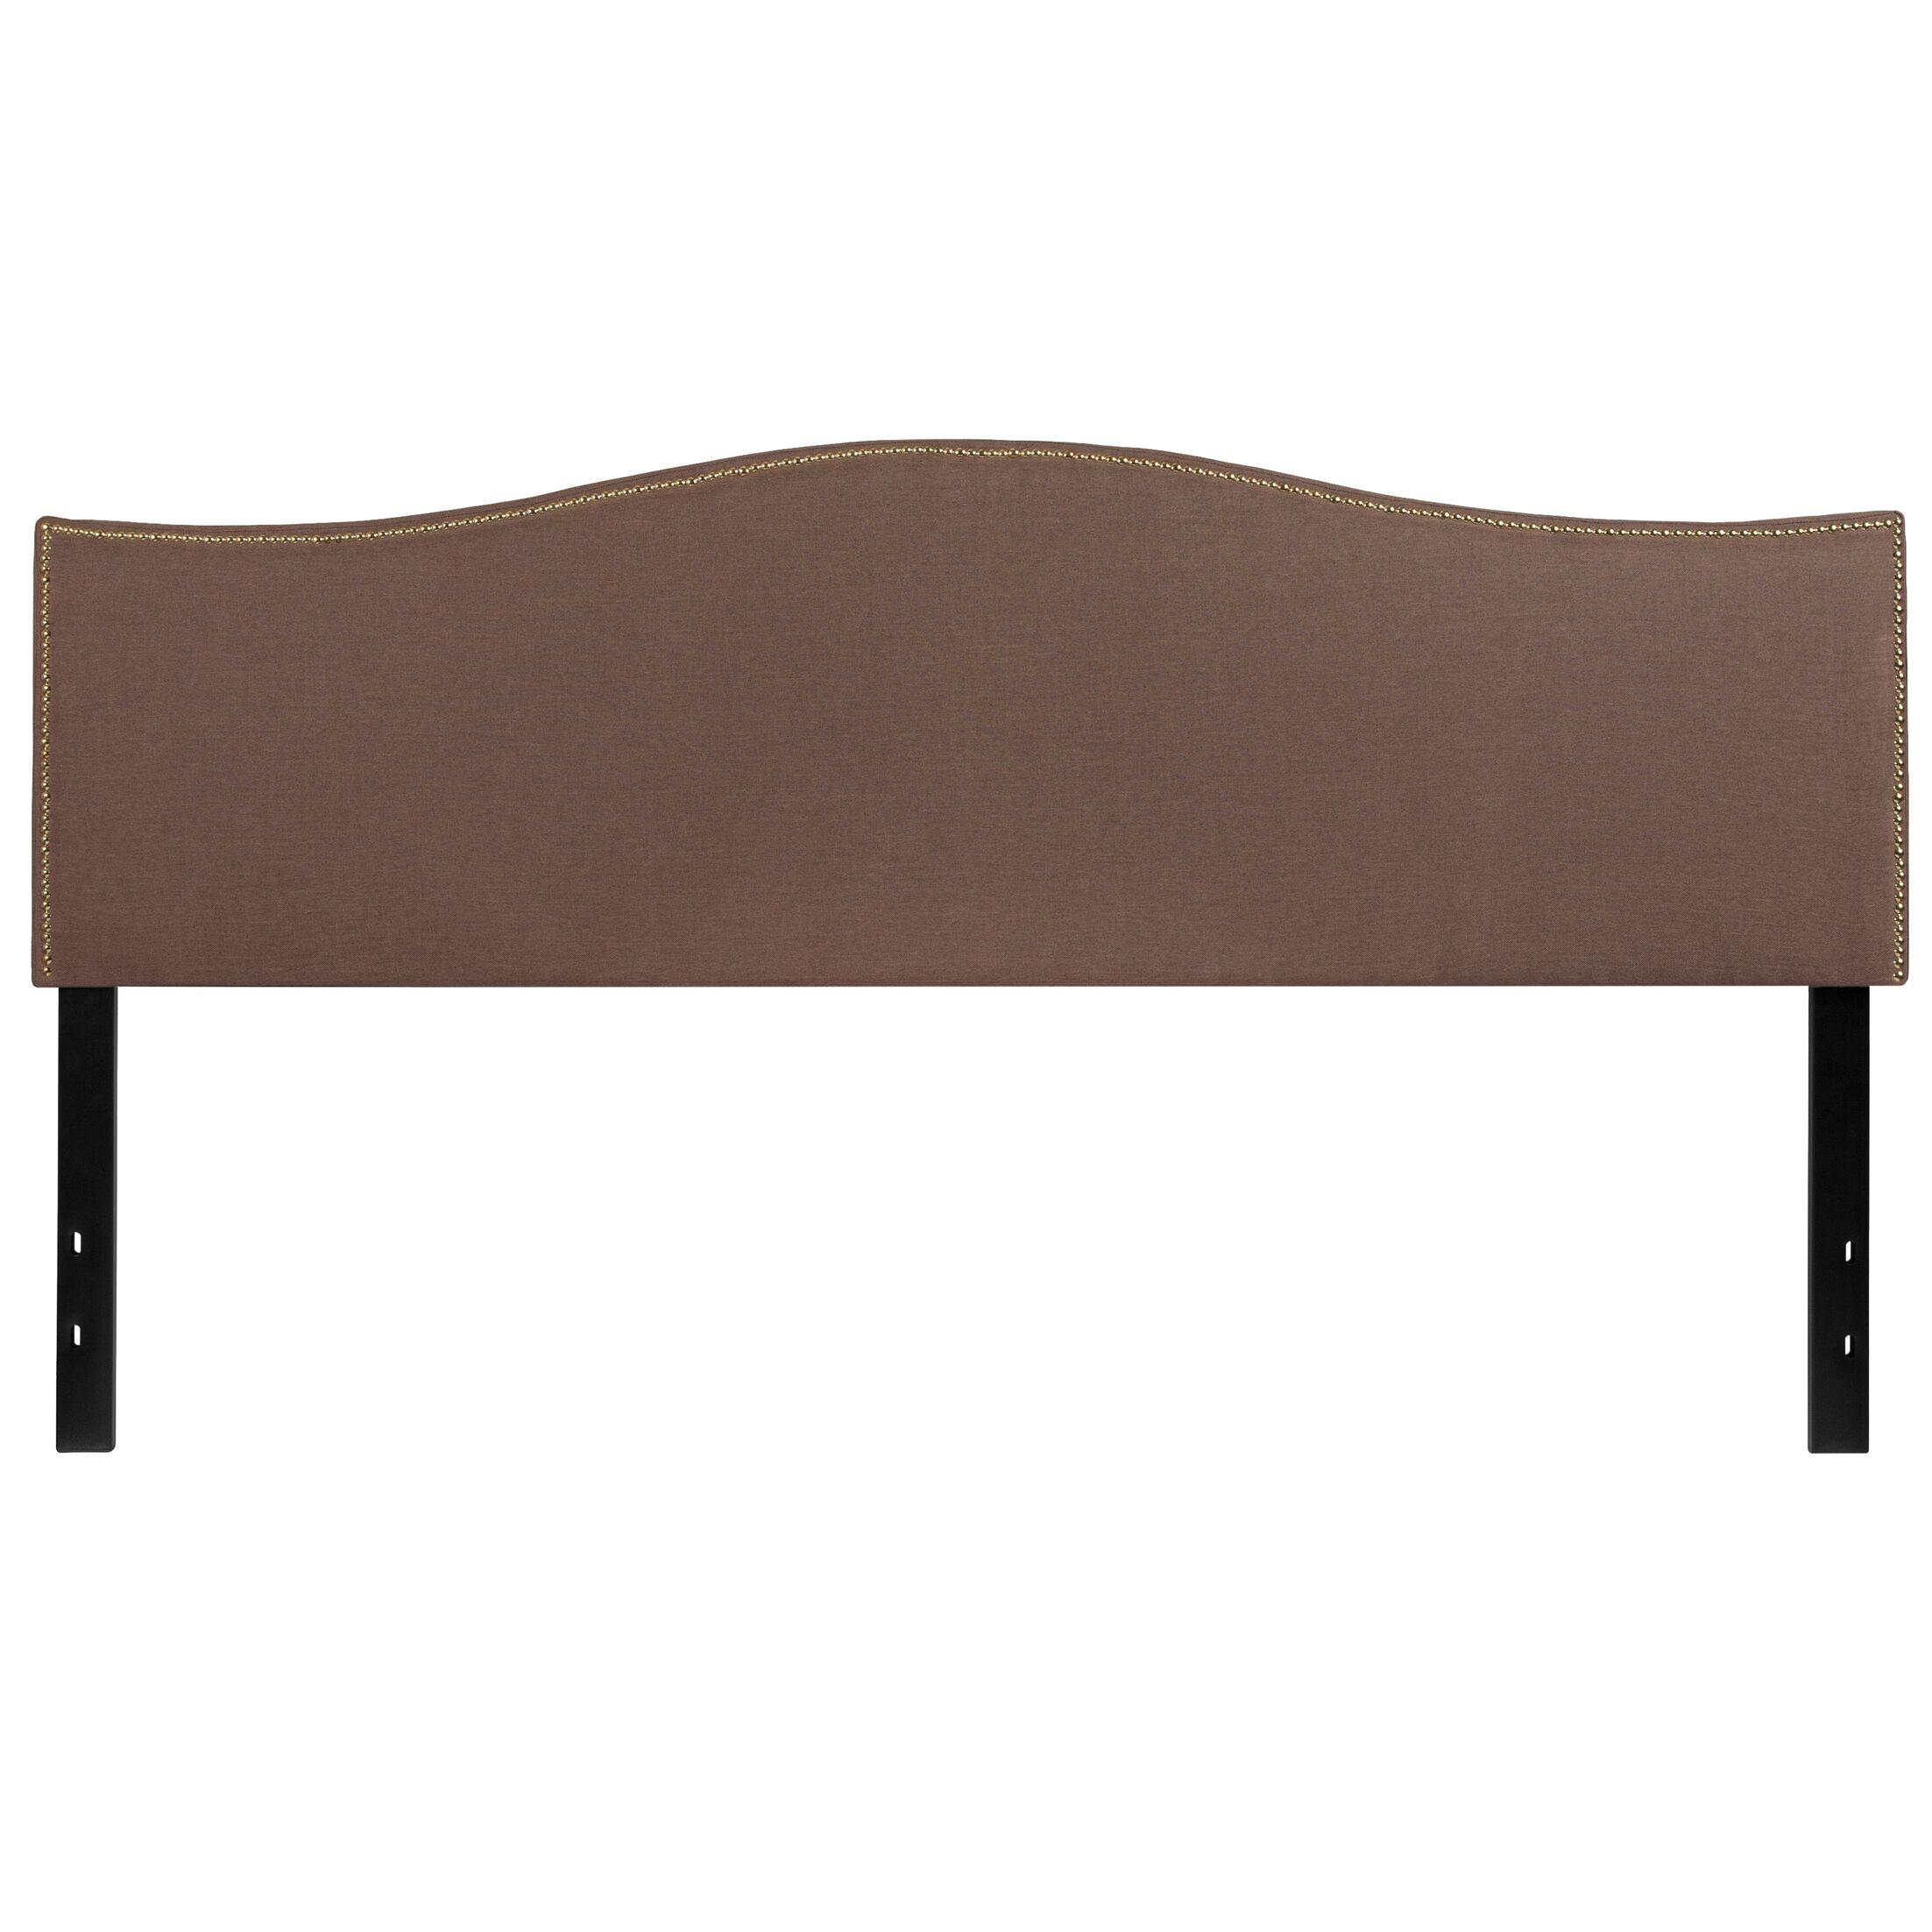 Fitzsimmons Upholstered Panel Headboard Upholstery: Camel, Size: Full